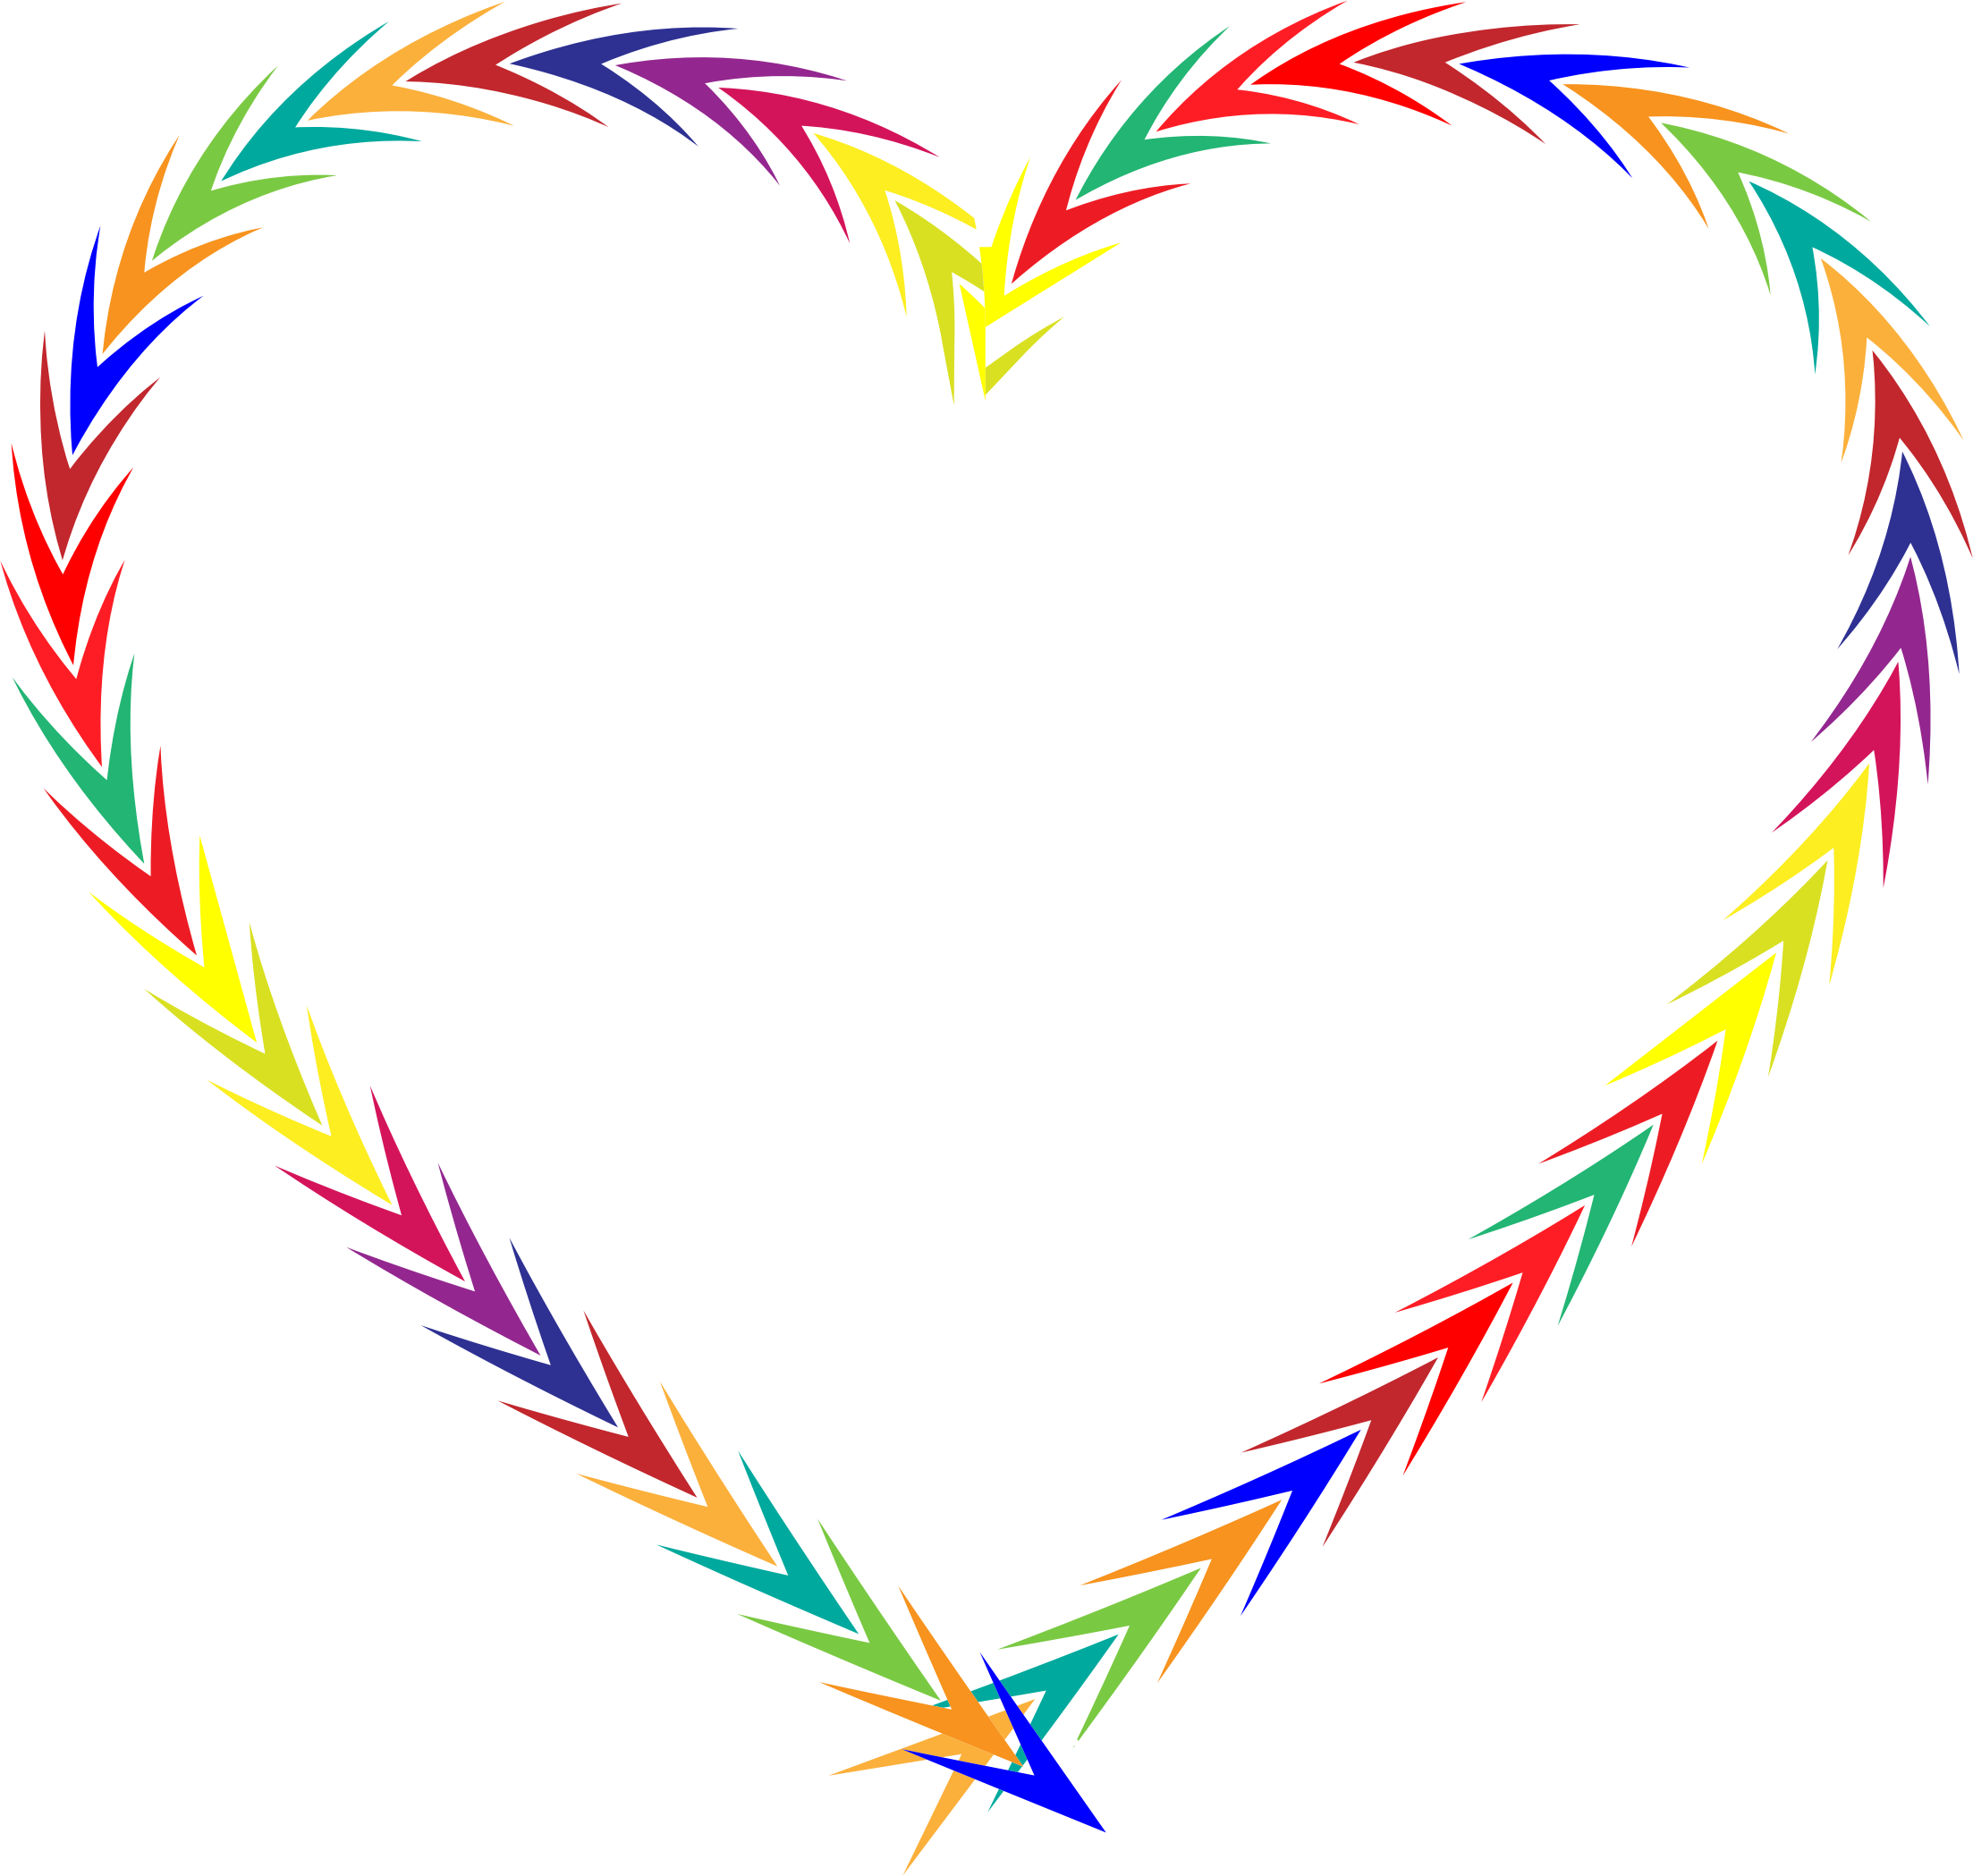 Colorful Arrows Heart by GDJ